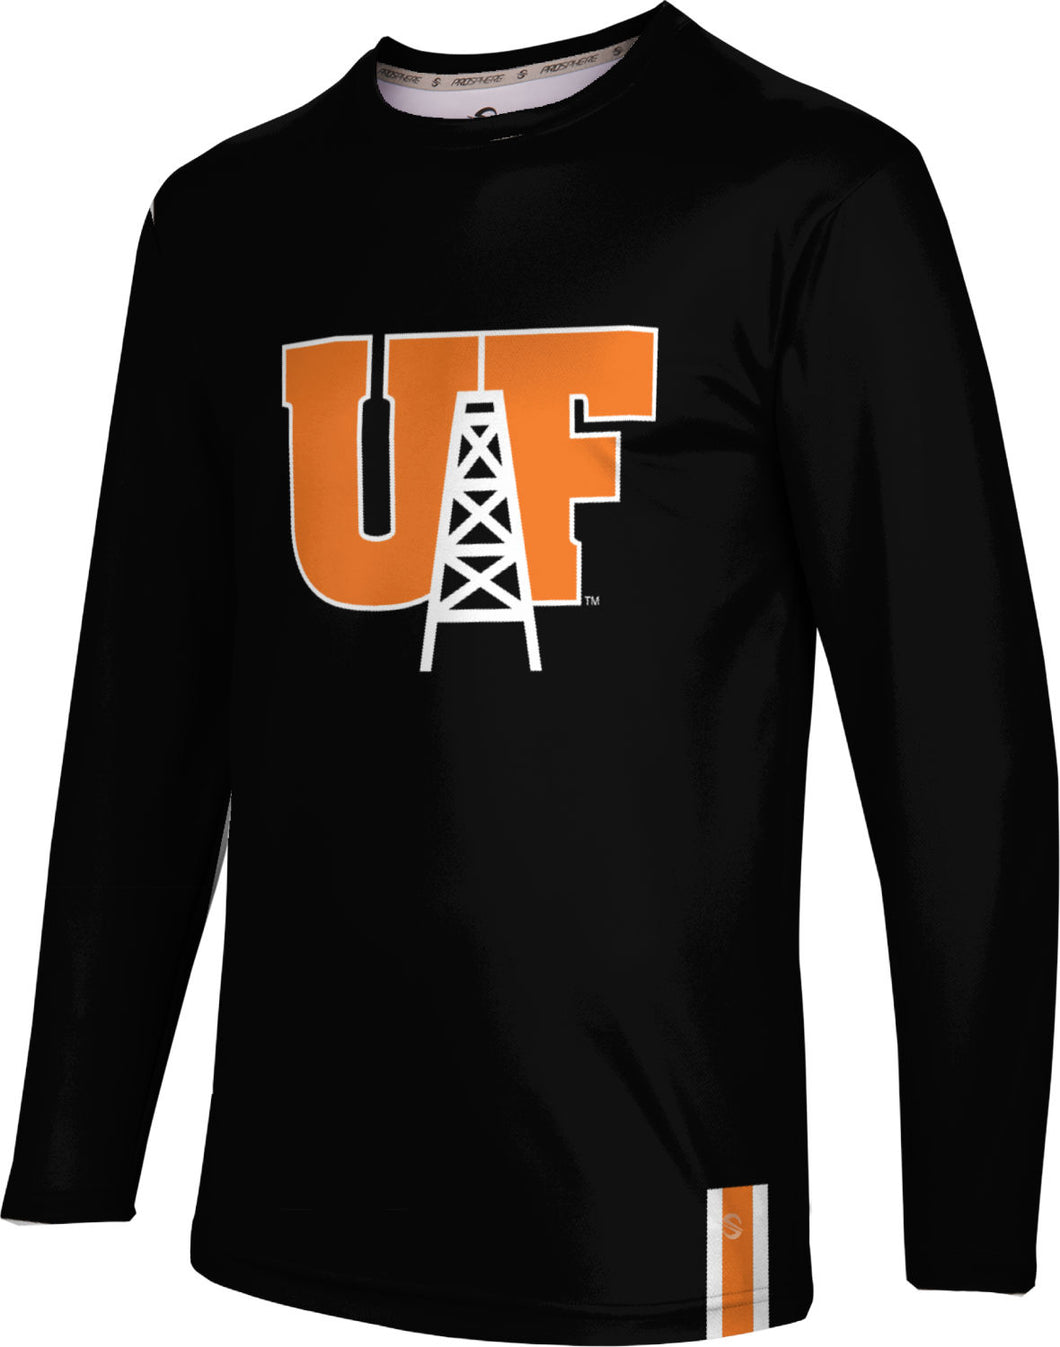 University of Findlay Long Sleeve Tee-Solid